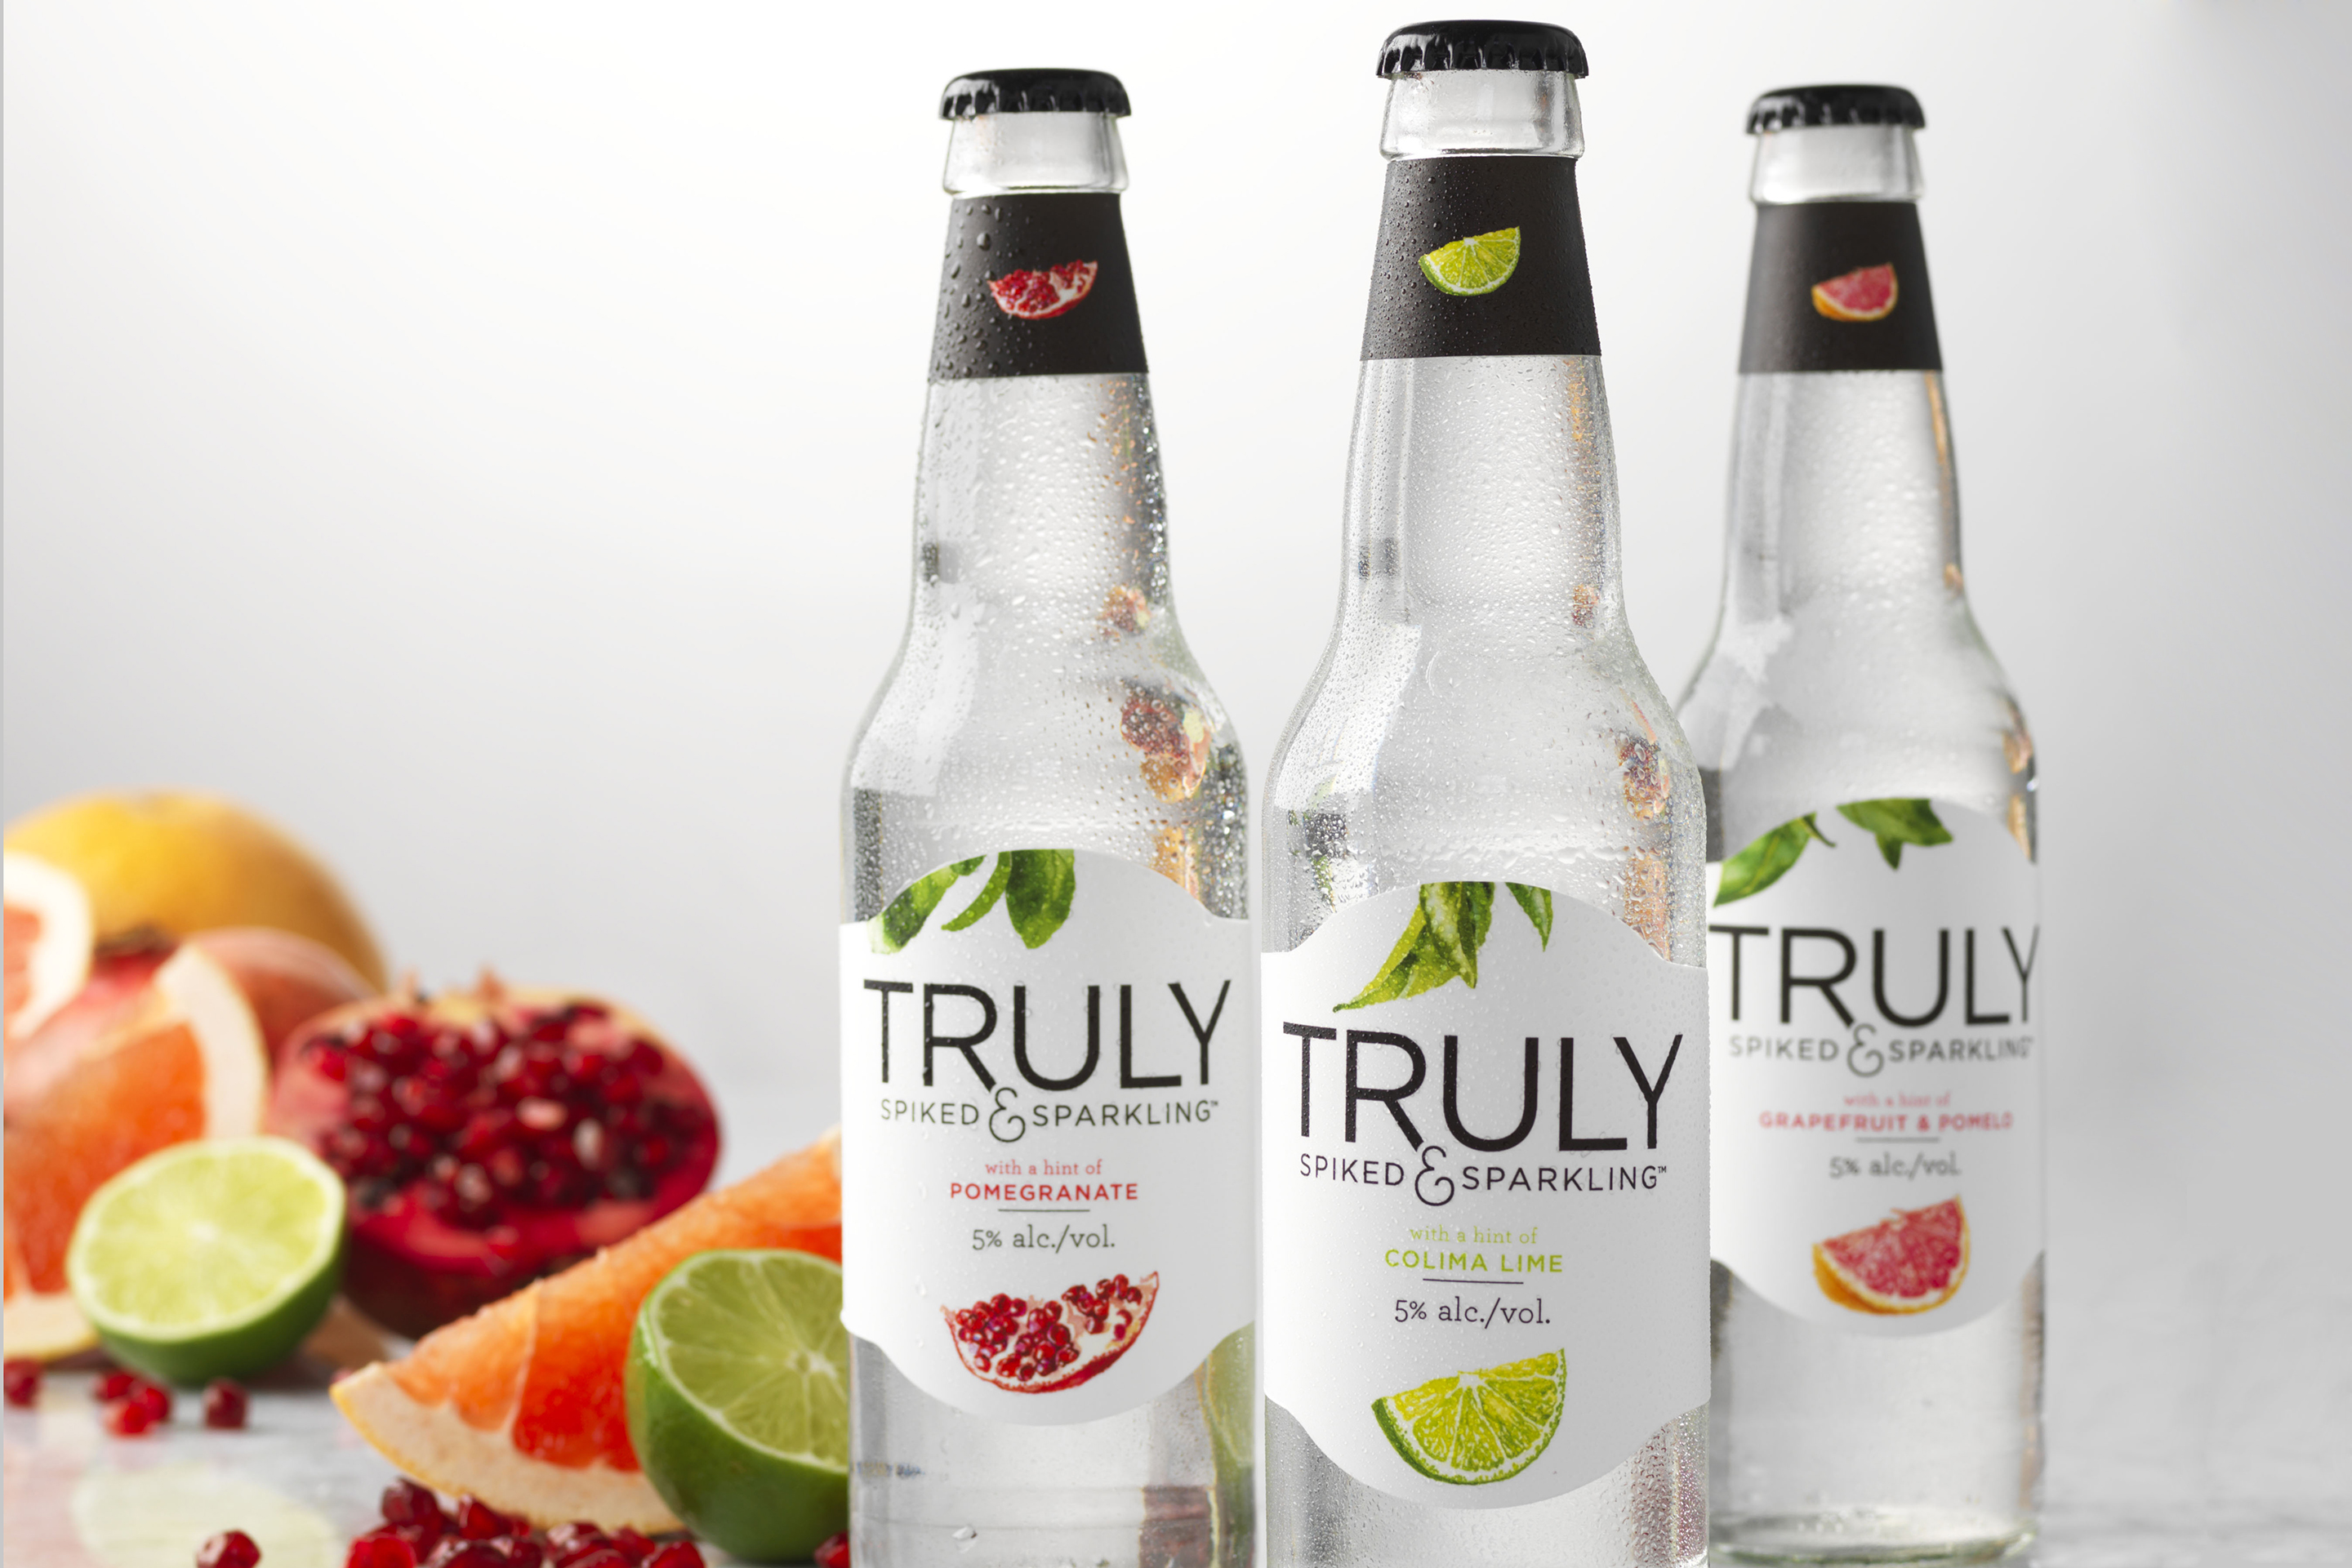 Truly Sparkling is a newer brand by Boston Beer that is aiming to tackle the emerging hard seltzer alcohol beverage category.